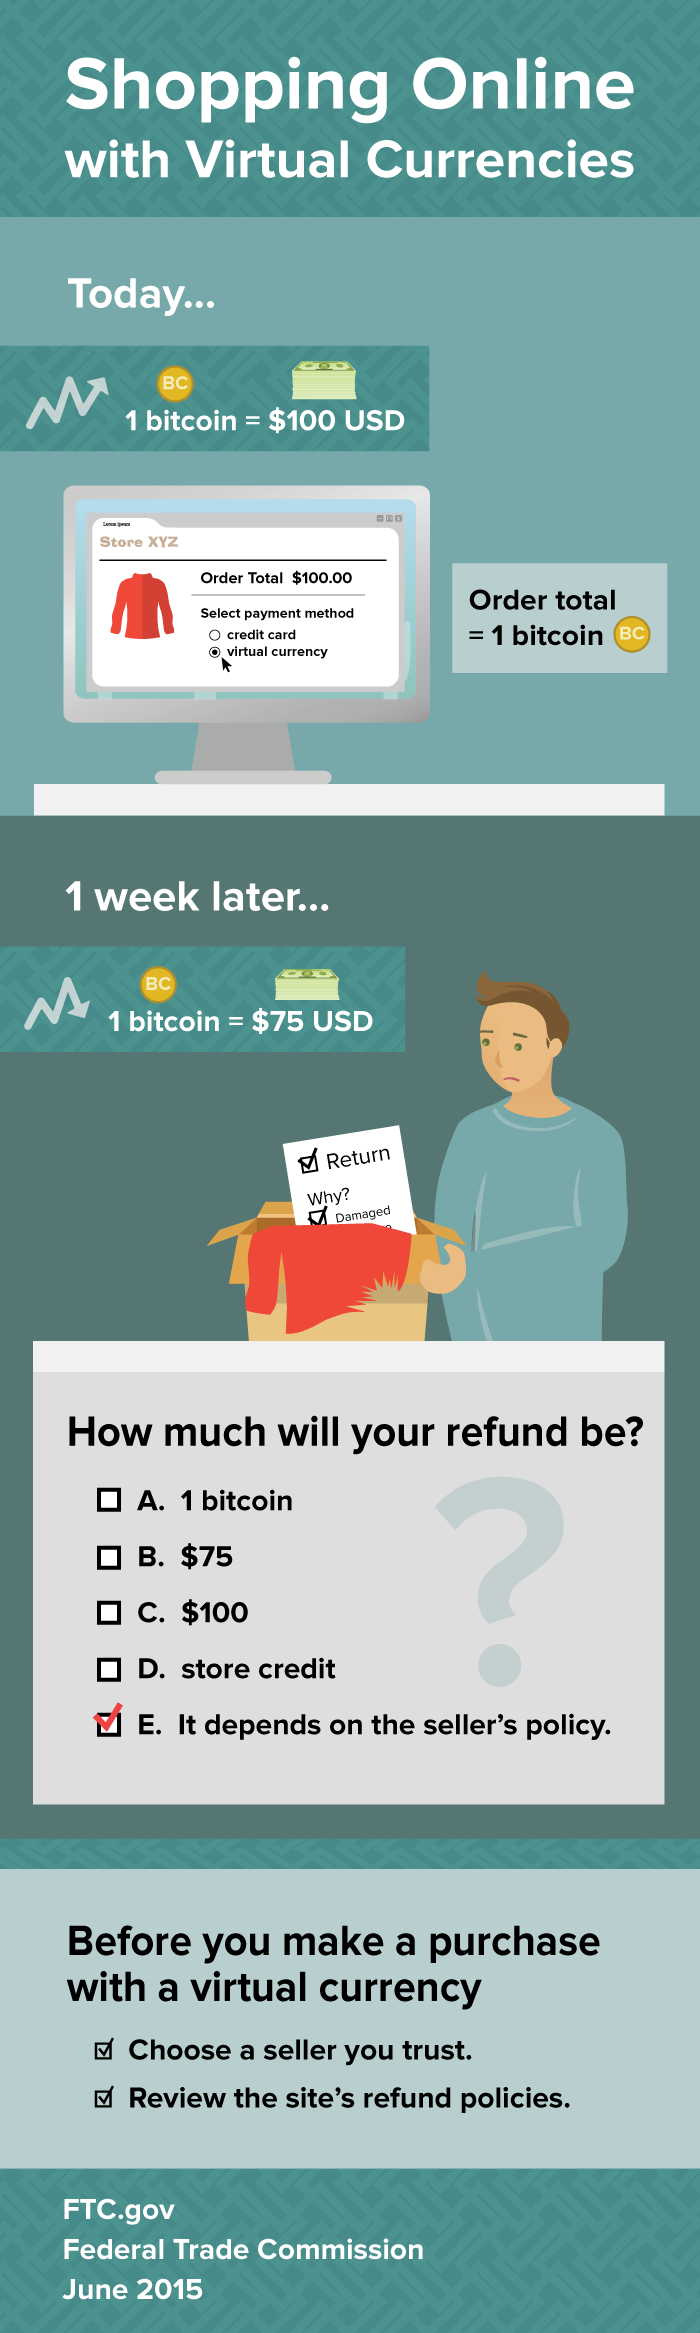 Shopping Online with Virtual Currencies. Before you make a purchase with a virtual currency, choose a seller you trust and review the site's refund policies. Here's an example to illustrate why. Say you buy a sweater today that cost $100. You decide to pay in bitcoins. Today, 1 bitcoin is worth $100. When you get the sweater, one week later, it's damaged. Now 1 bitcoin is worth $75. How much will your refund be? A. 1 bitcoin B. $75 C. $100 D. store credit E. It depends on the seller's policy. The answer is E. It depends on the seller's policy.